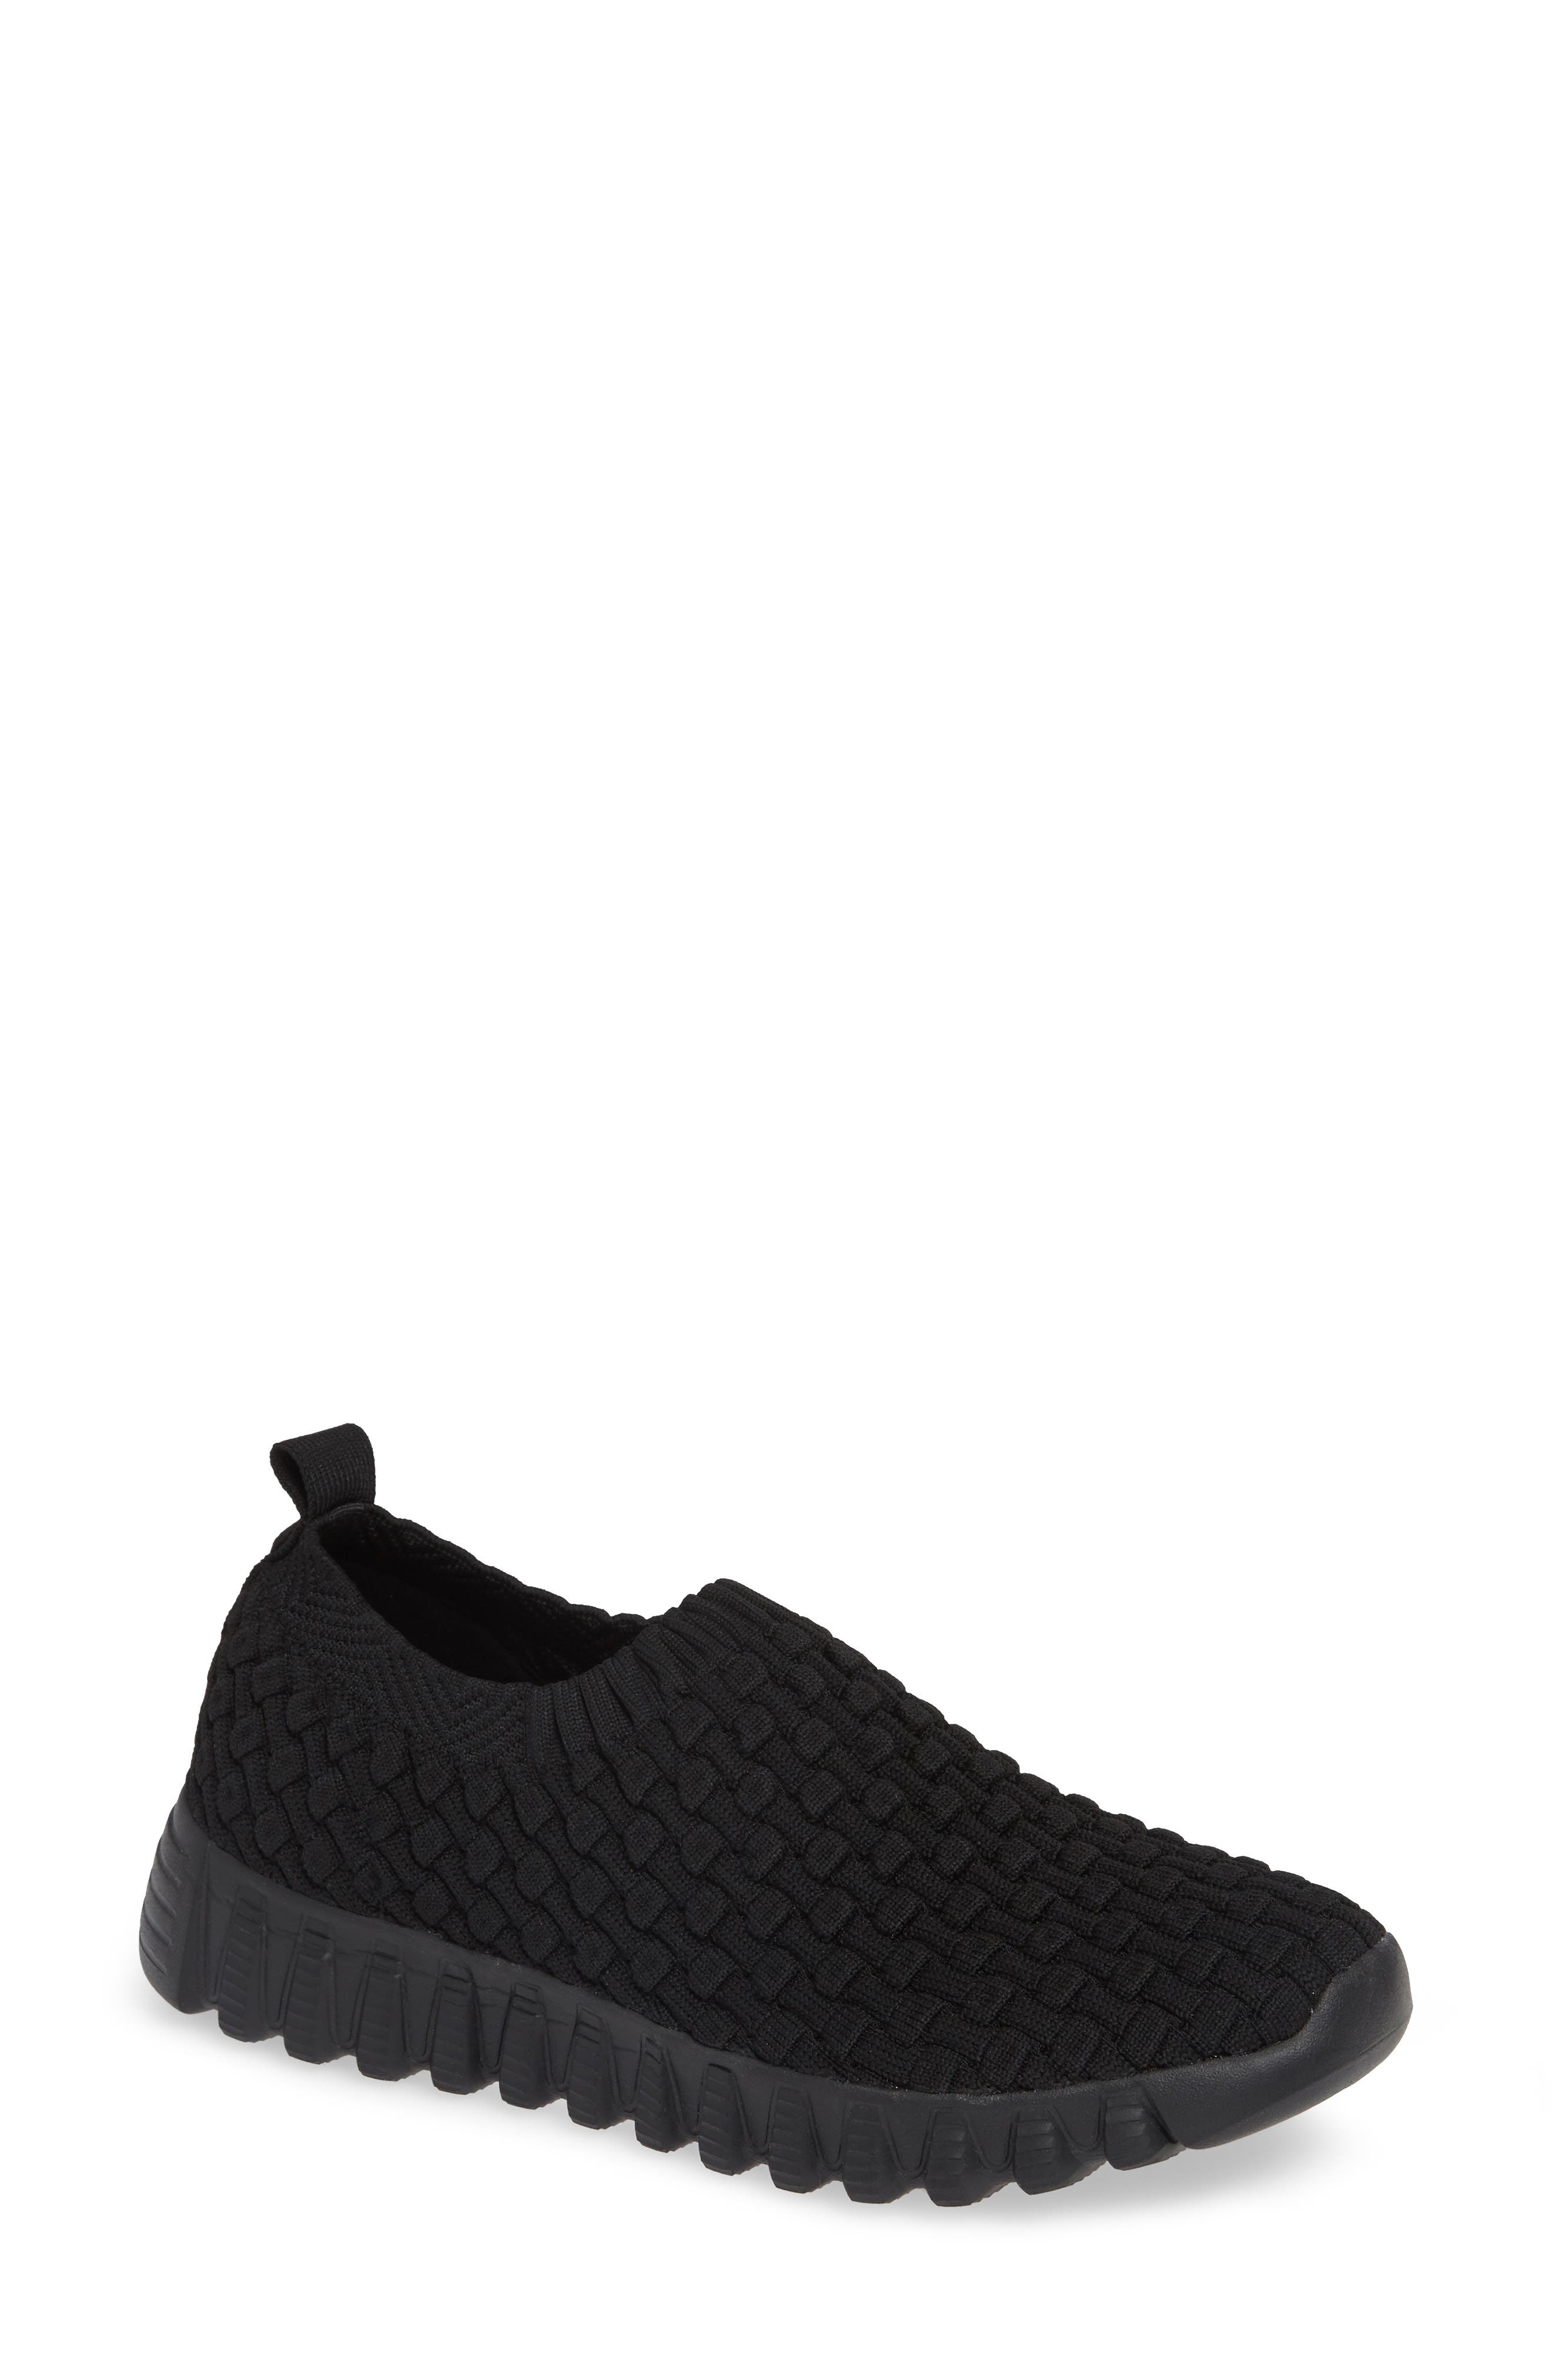 Tender Slip-On Sneaker,                         Main,                         color, BLACK FABRIC